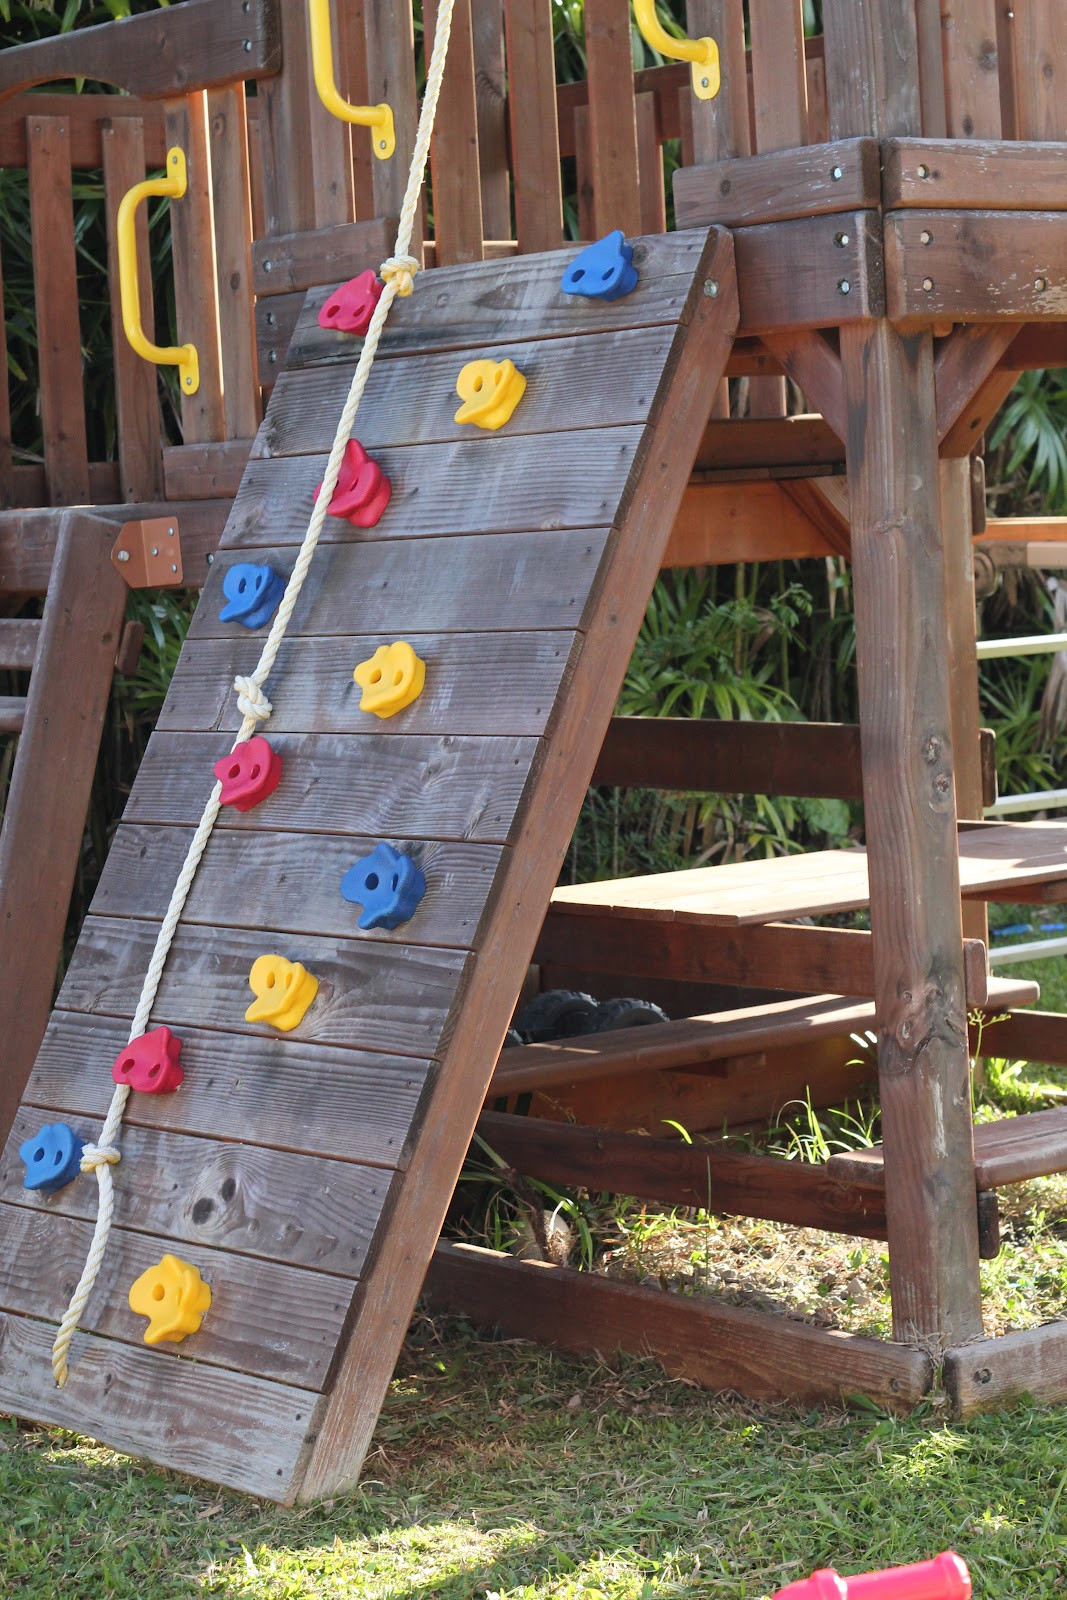 Best ideas about DIY Kids Swings . Save or Pin DIY Wood Staining a Kids Swing Set Now.